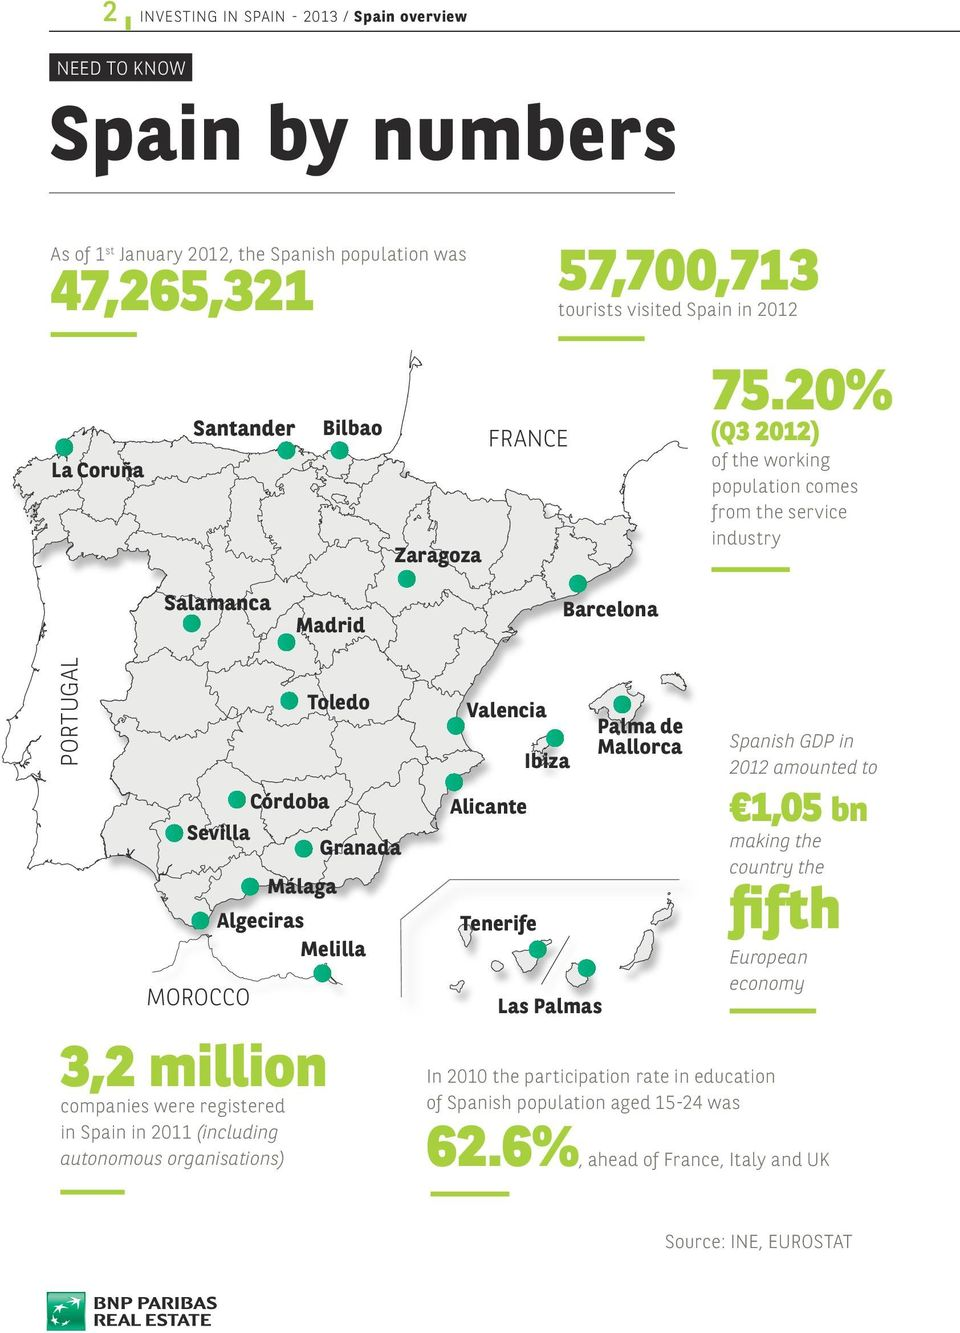 20% (Q3 2012) of the working population comes from the service industry Salamanca Madrid Barcelona PORTUGAL 3,2 million companies were registered in Spain in 2011 (including autonomous